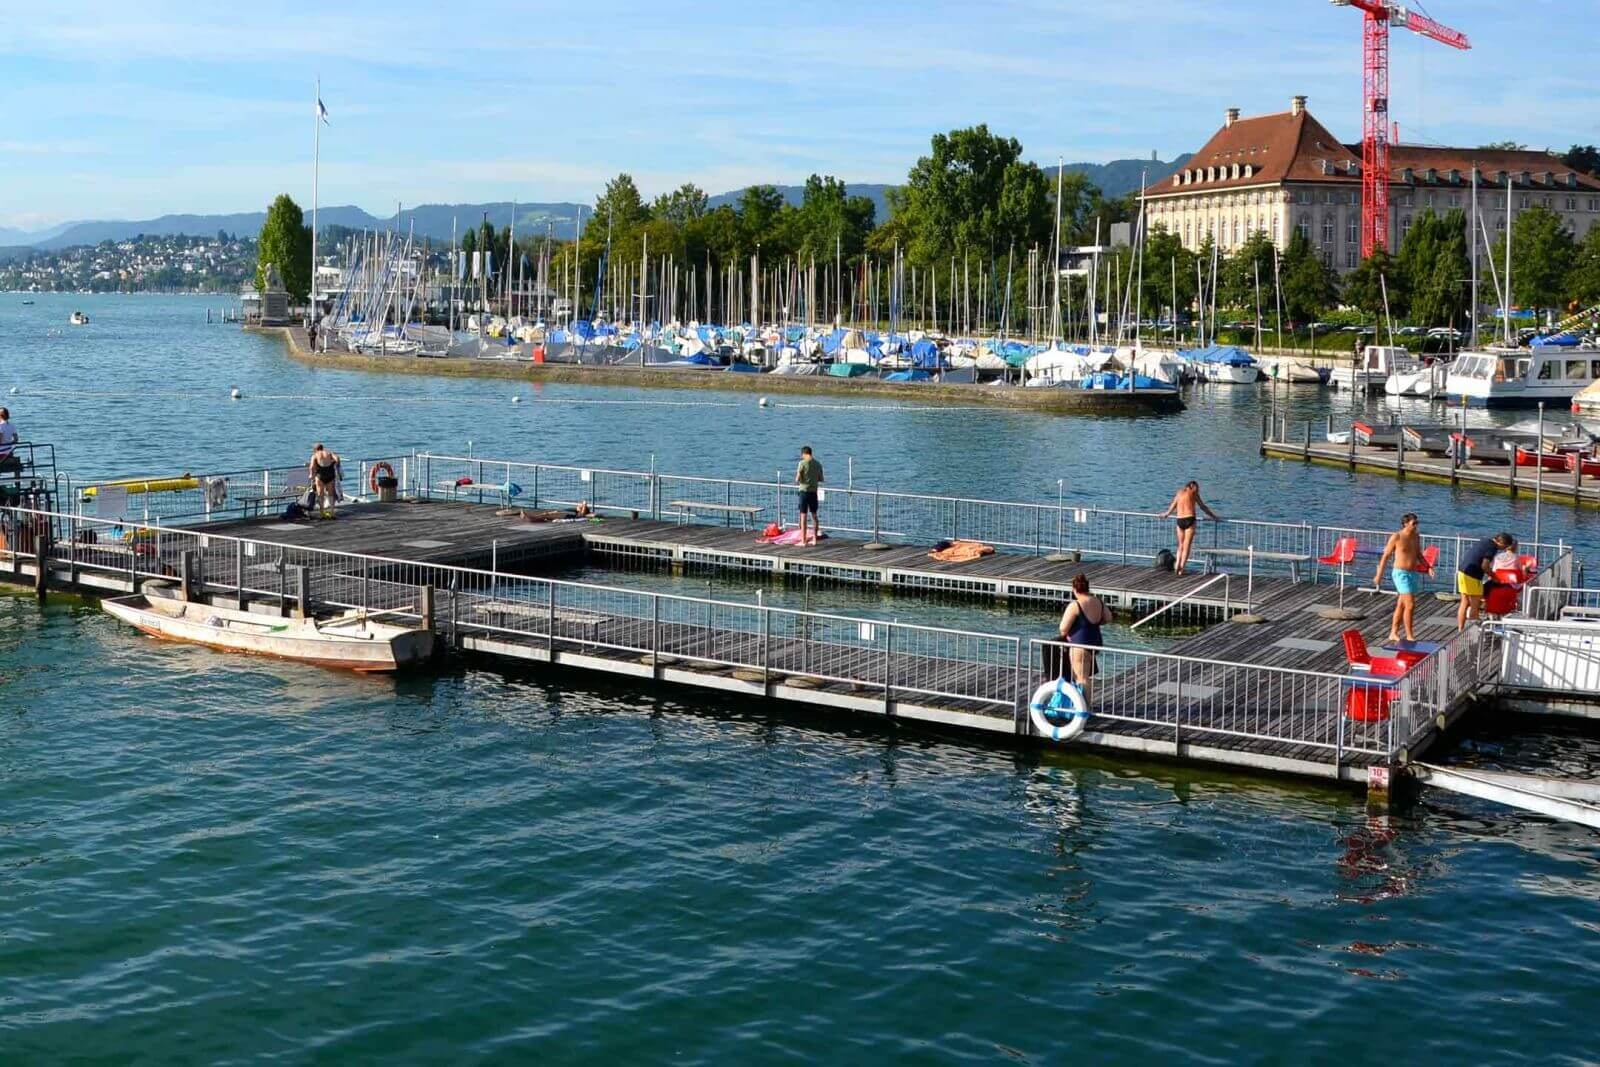 Zurich's Enge is the perfect location if you are traveling